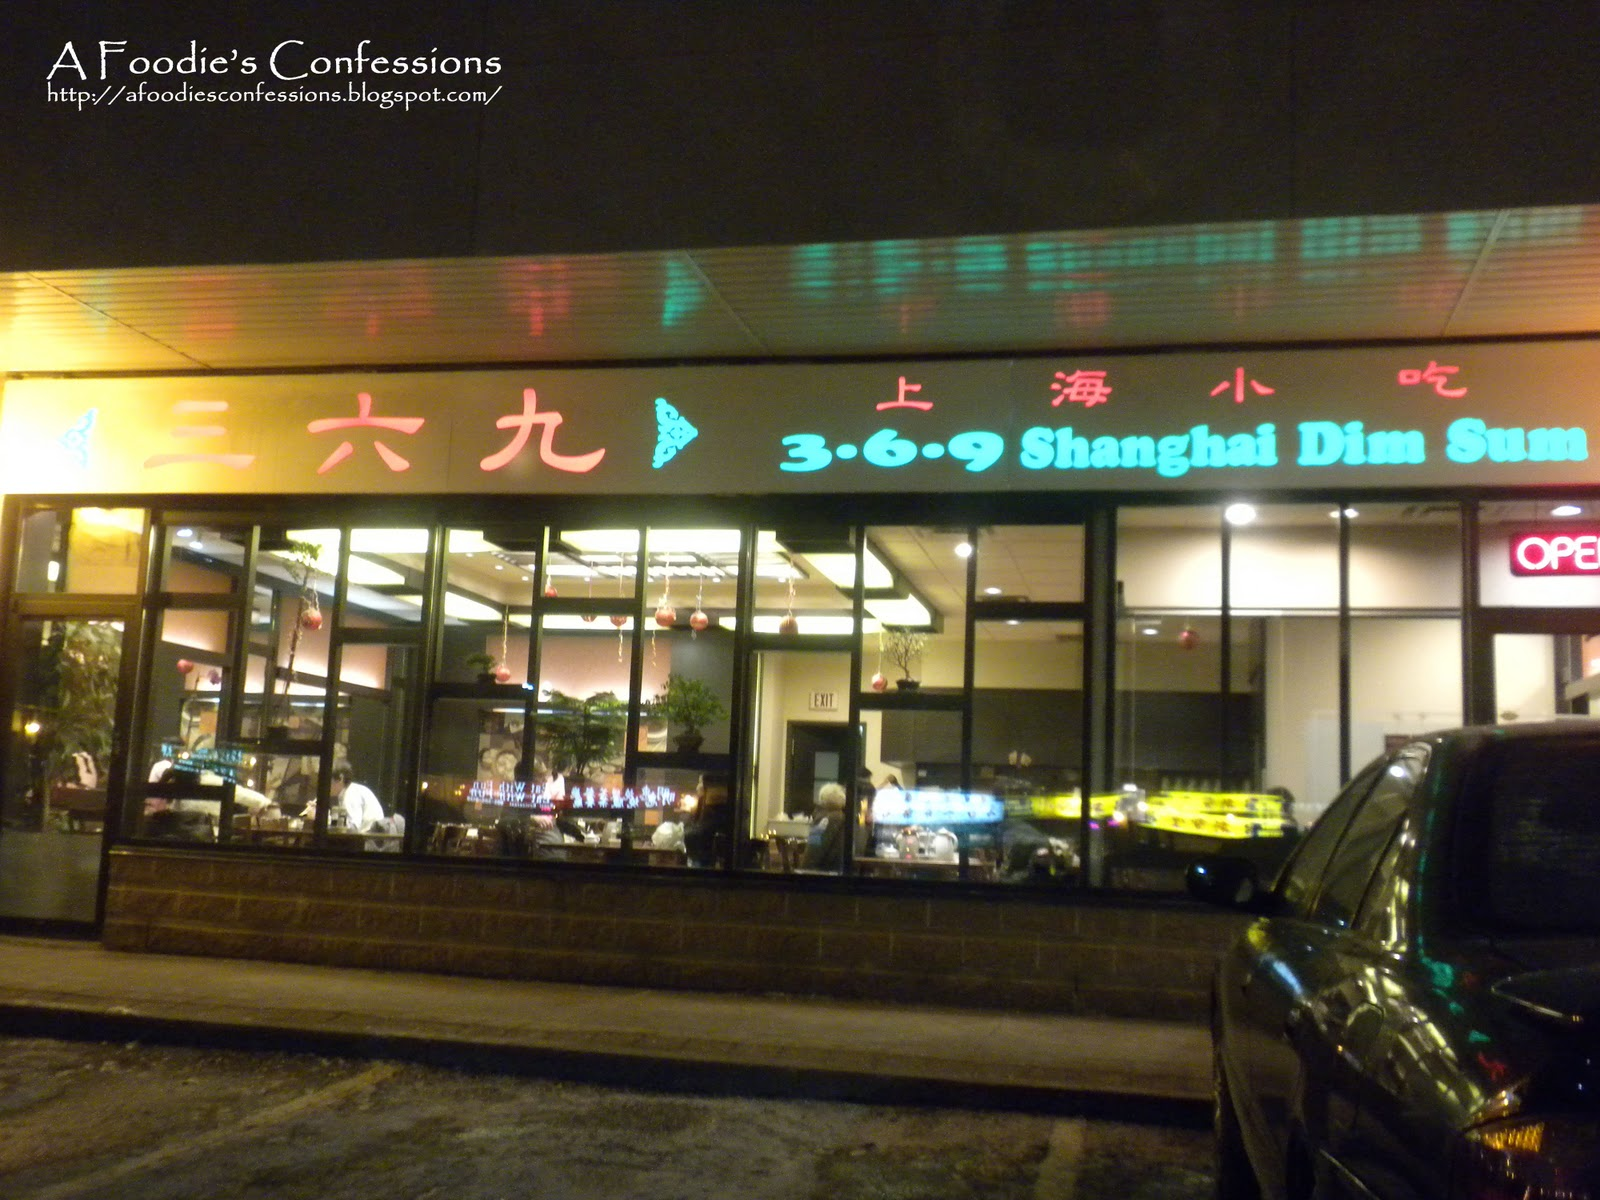 A Foodie S Confessions Restaurant Review 369 Shanghai